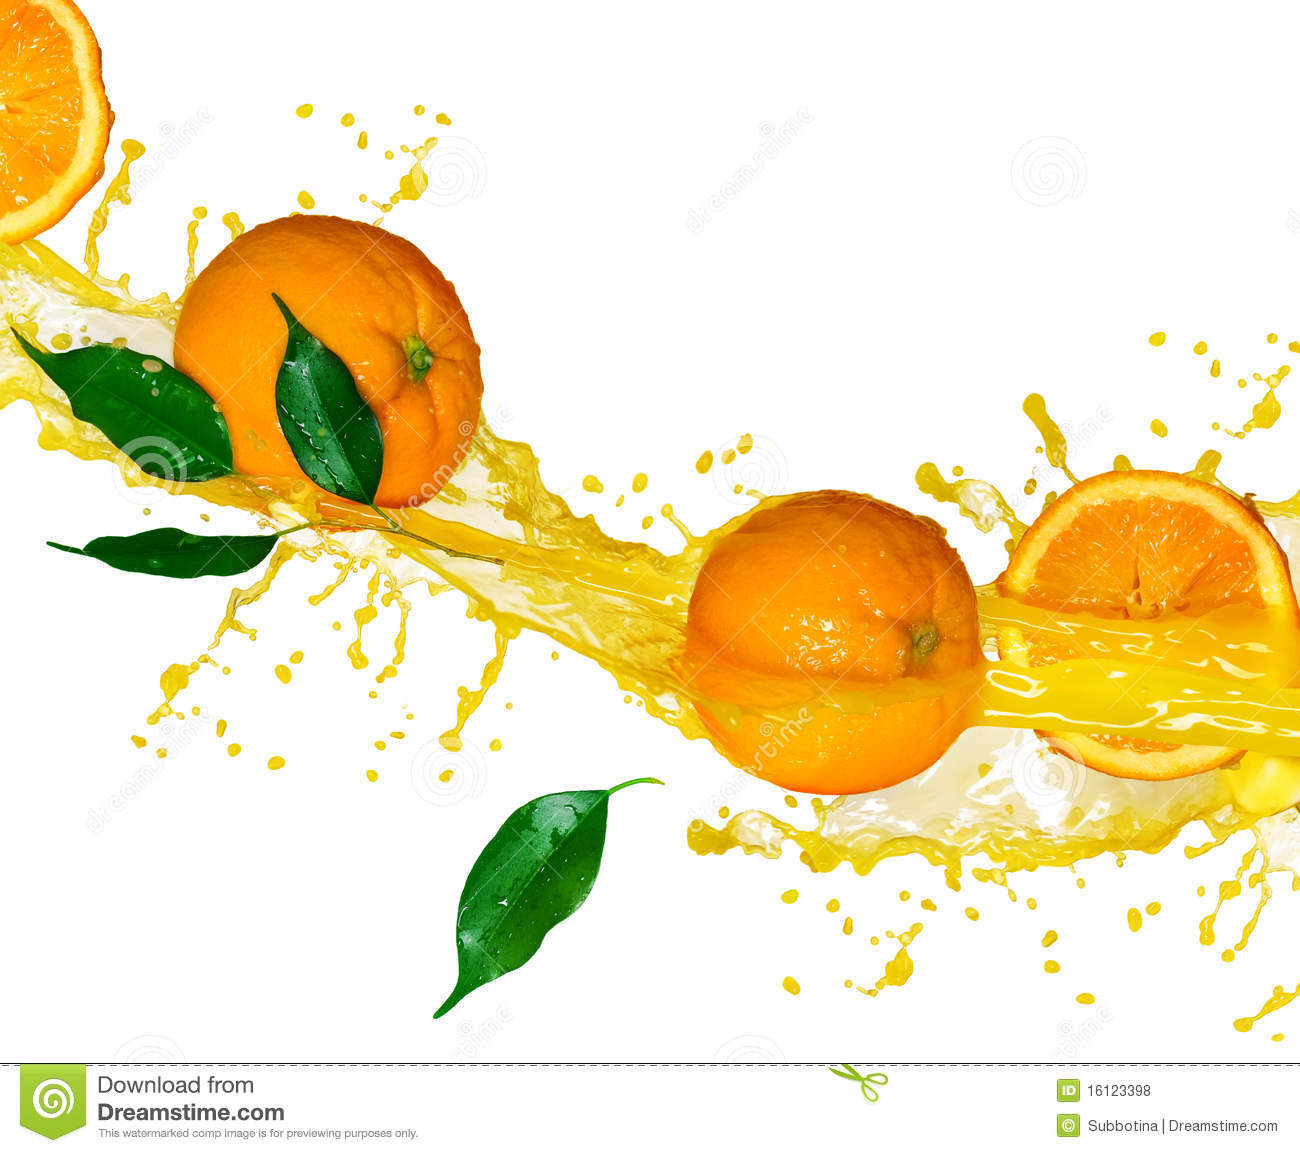 Jus d orange splashng